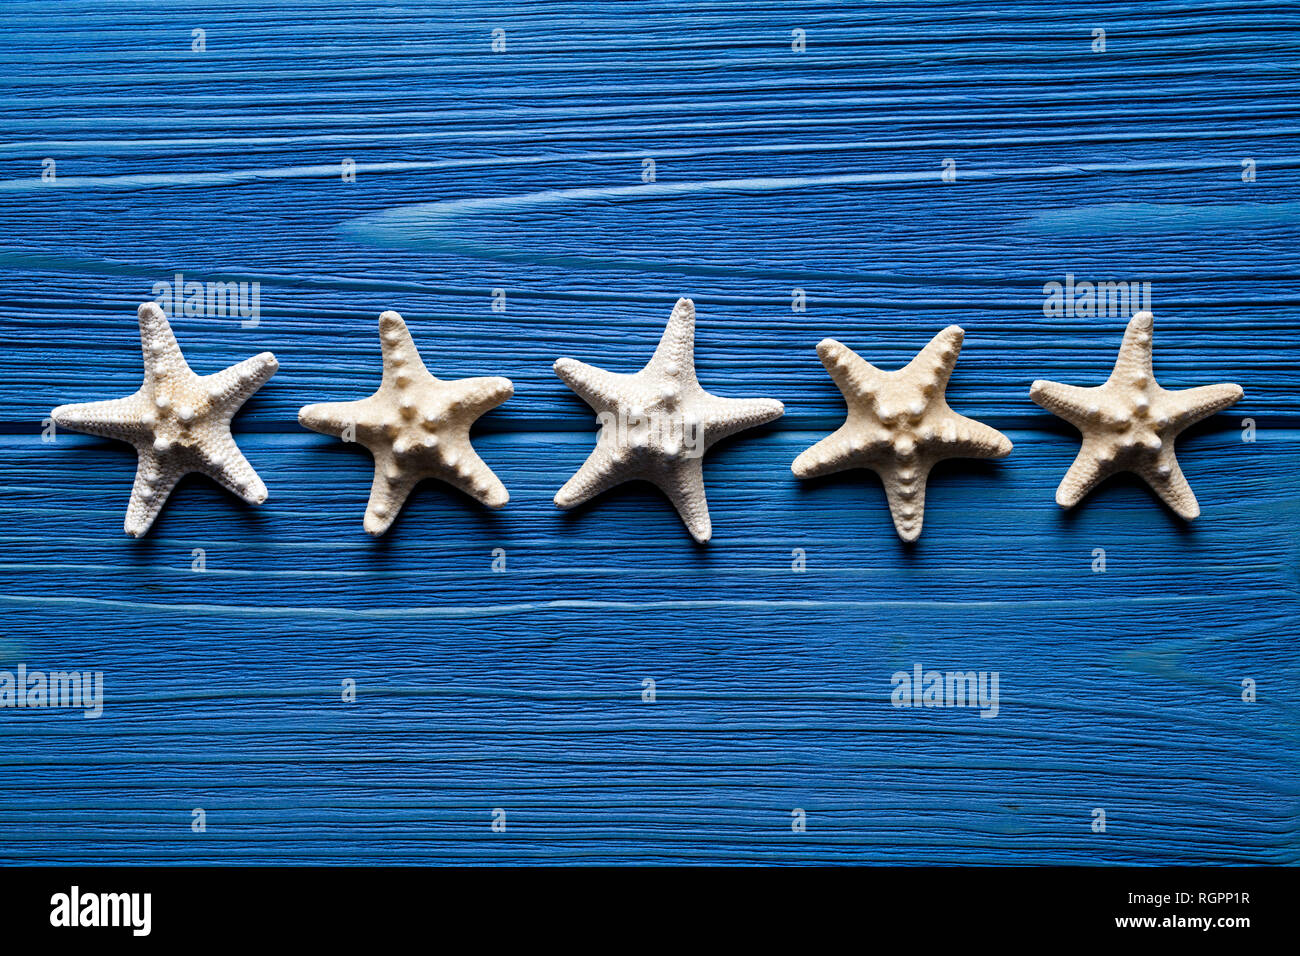 Starfishes on blue planks background - Stock Image